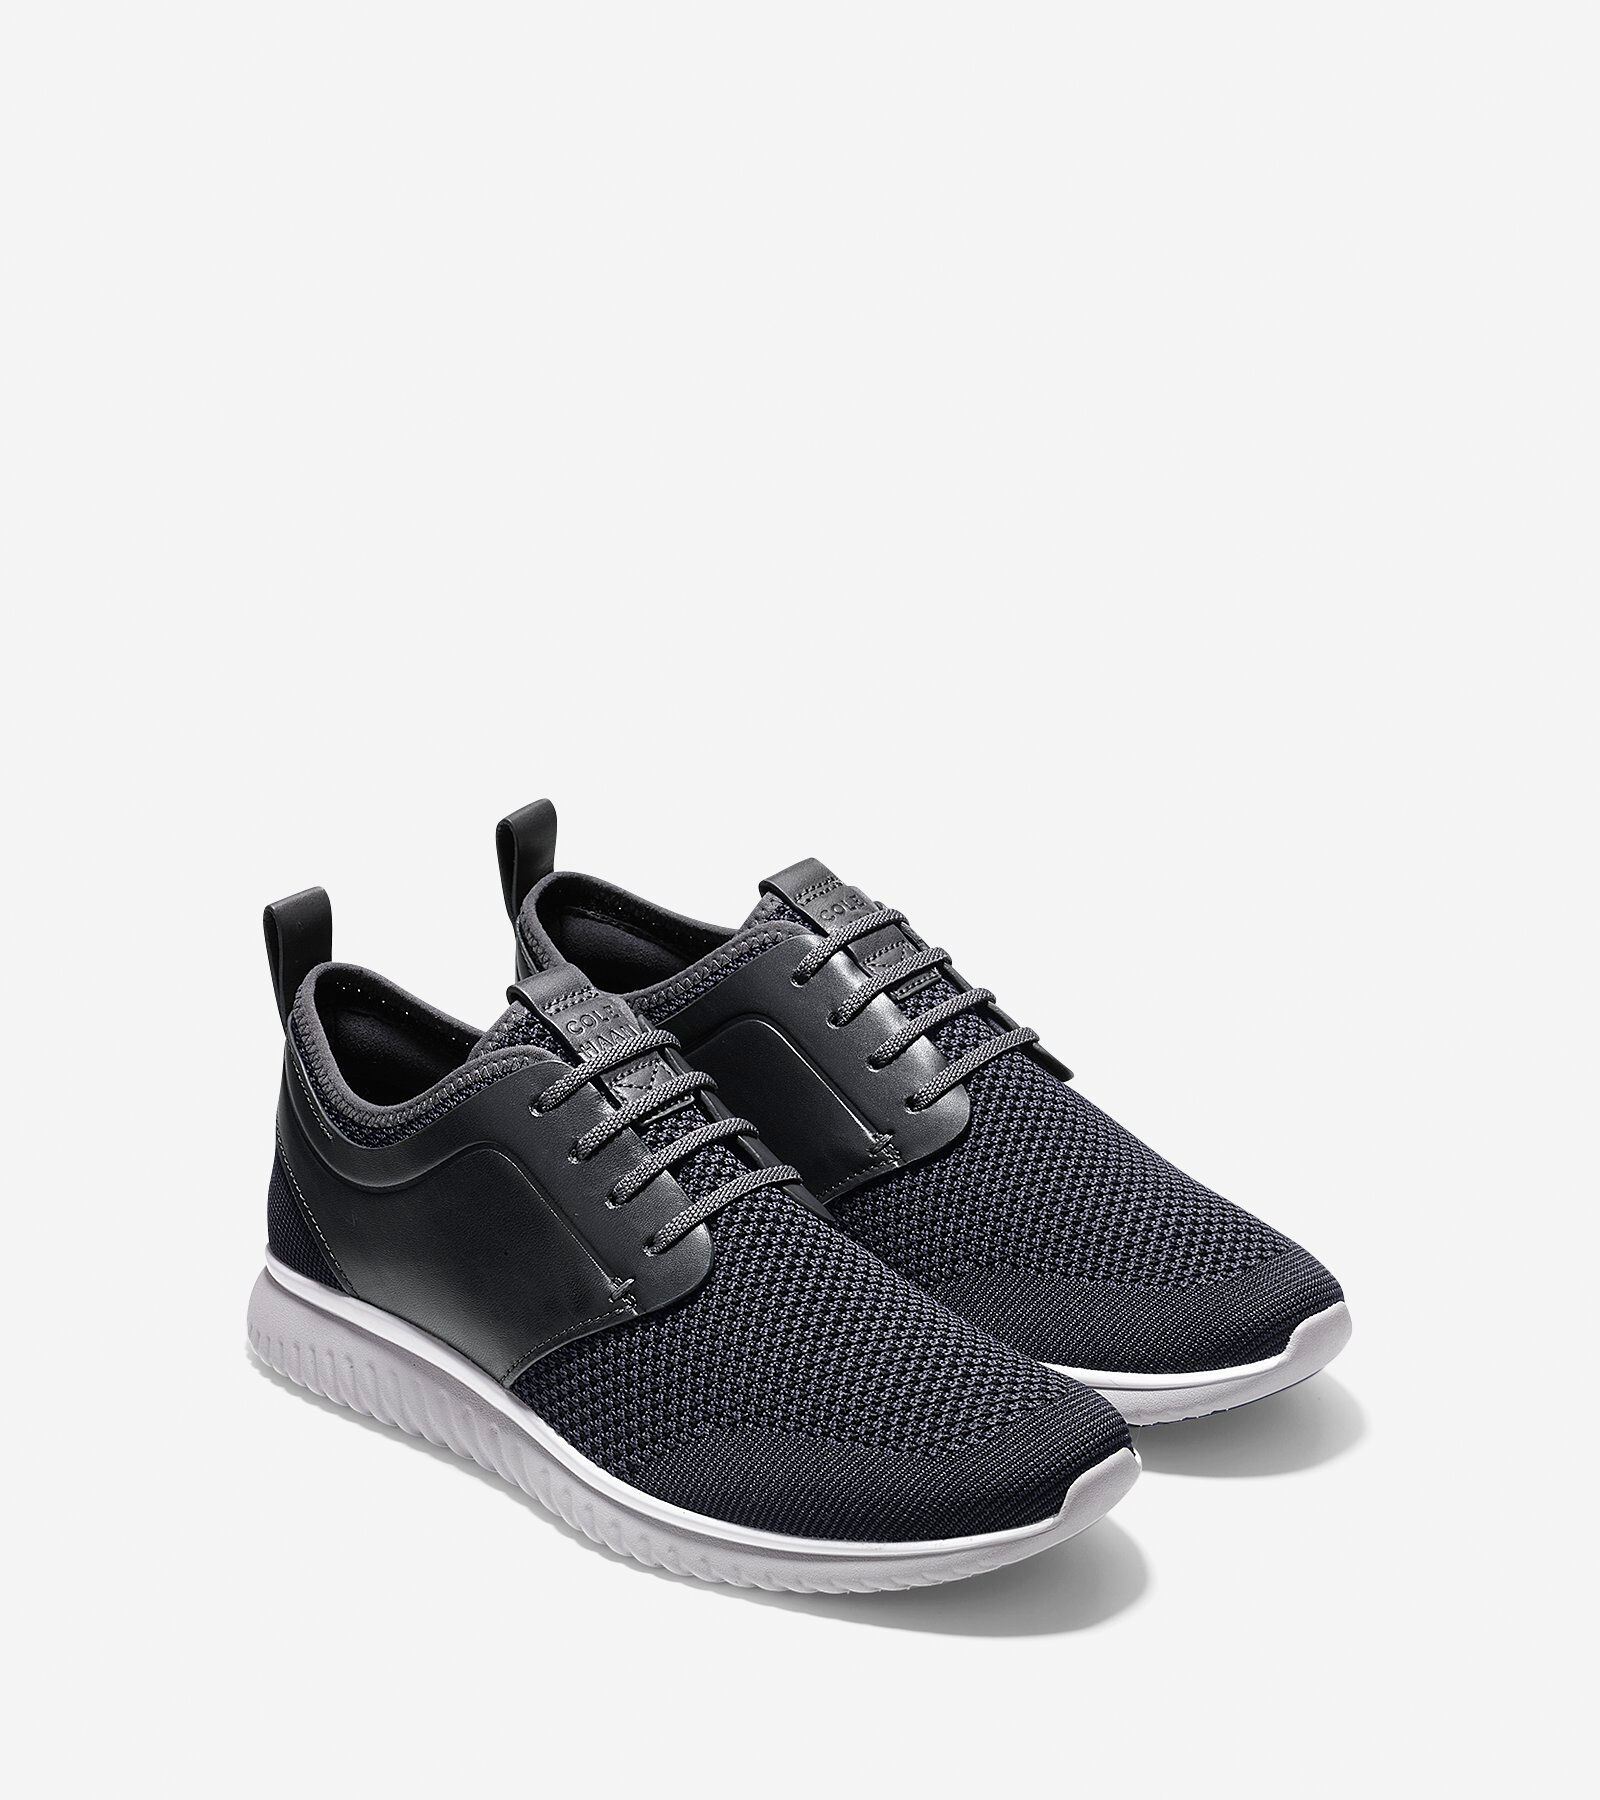 Grand Motion Knit Cole Haan LgzigA9